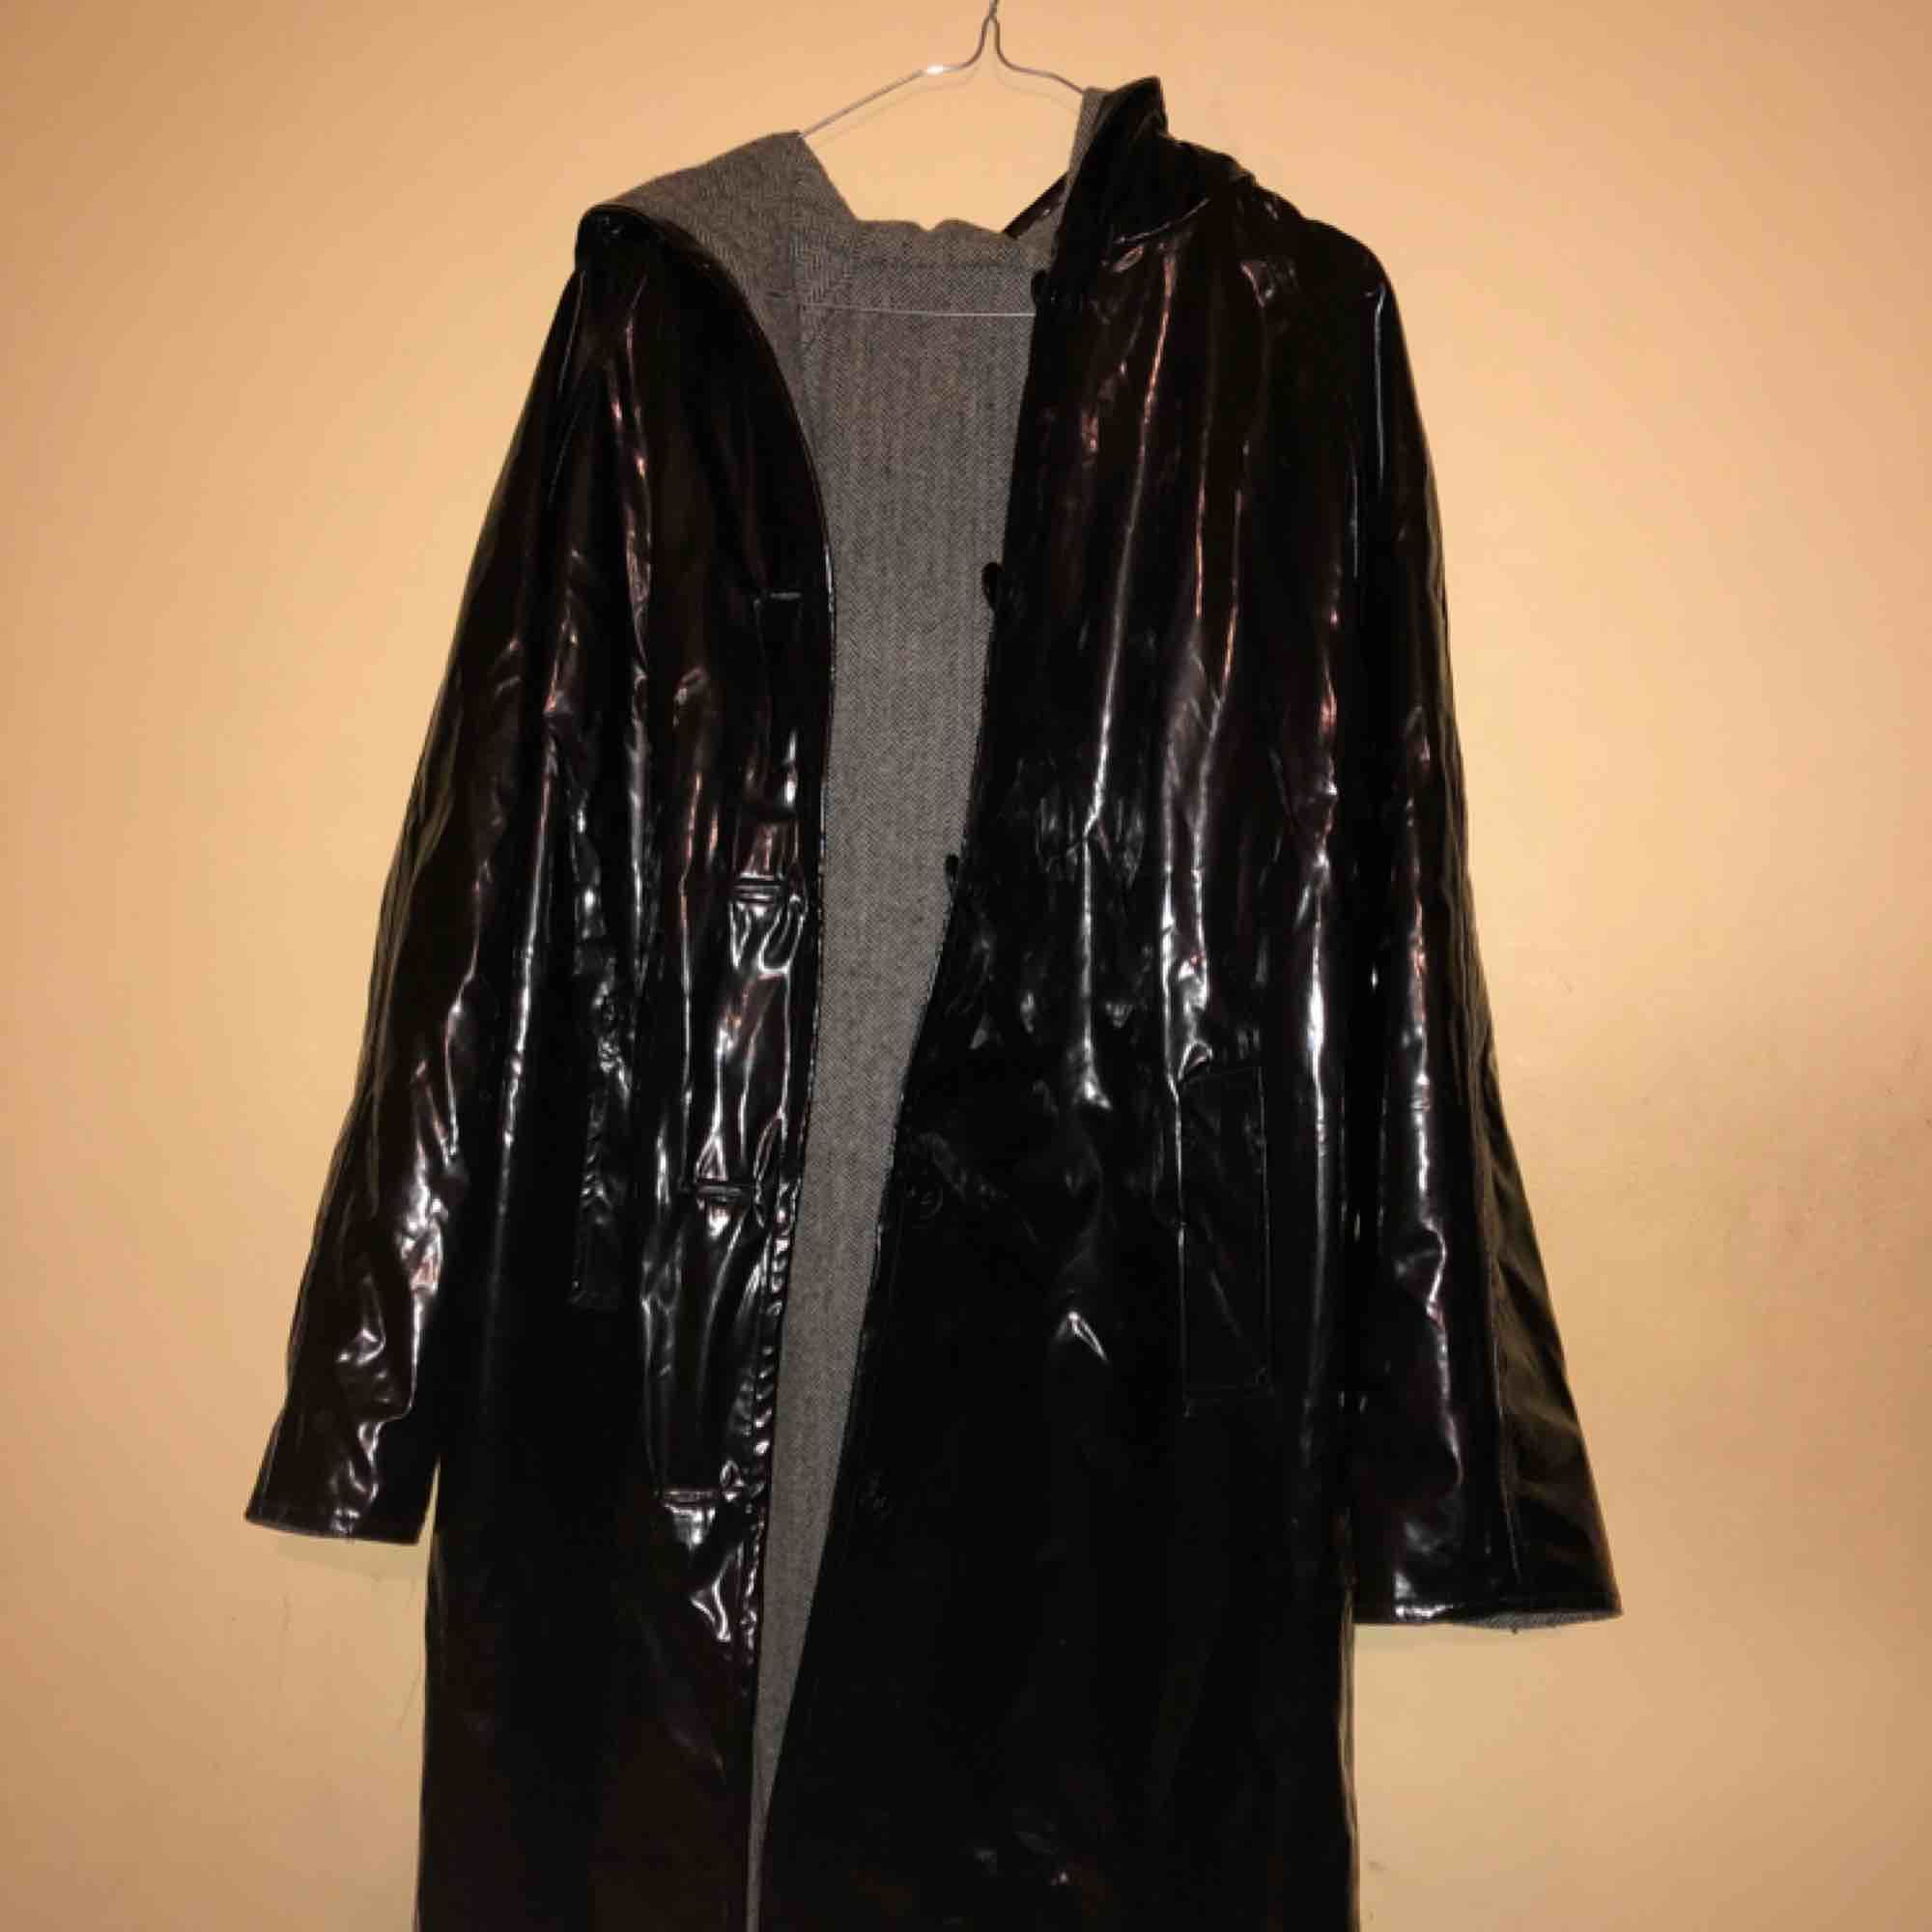 Vintage double sided coat. One side is shiny black faux leather. The other a herringbone coat pattern. Both wet and dry cold weather. Both sides have buttons and pockets. Has a very large hood.. Jackor.